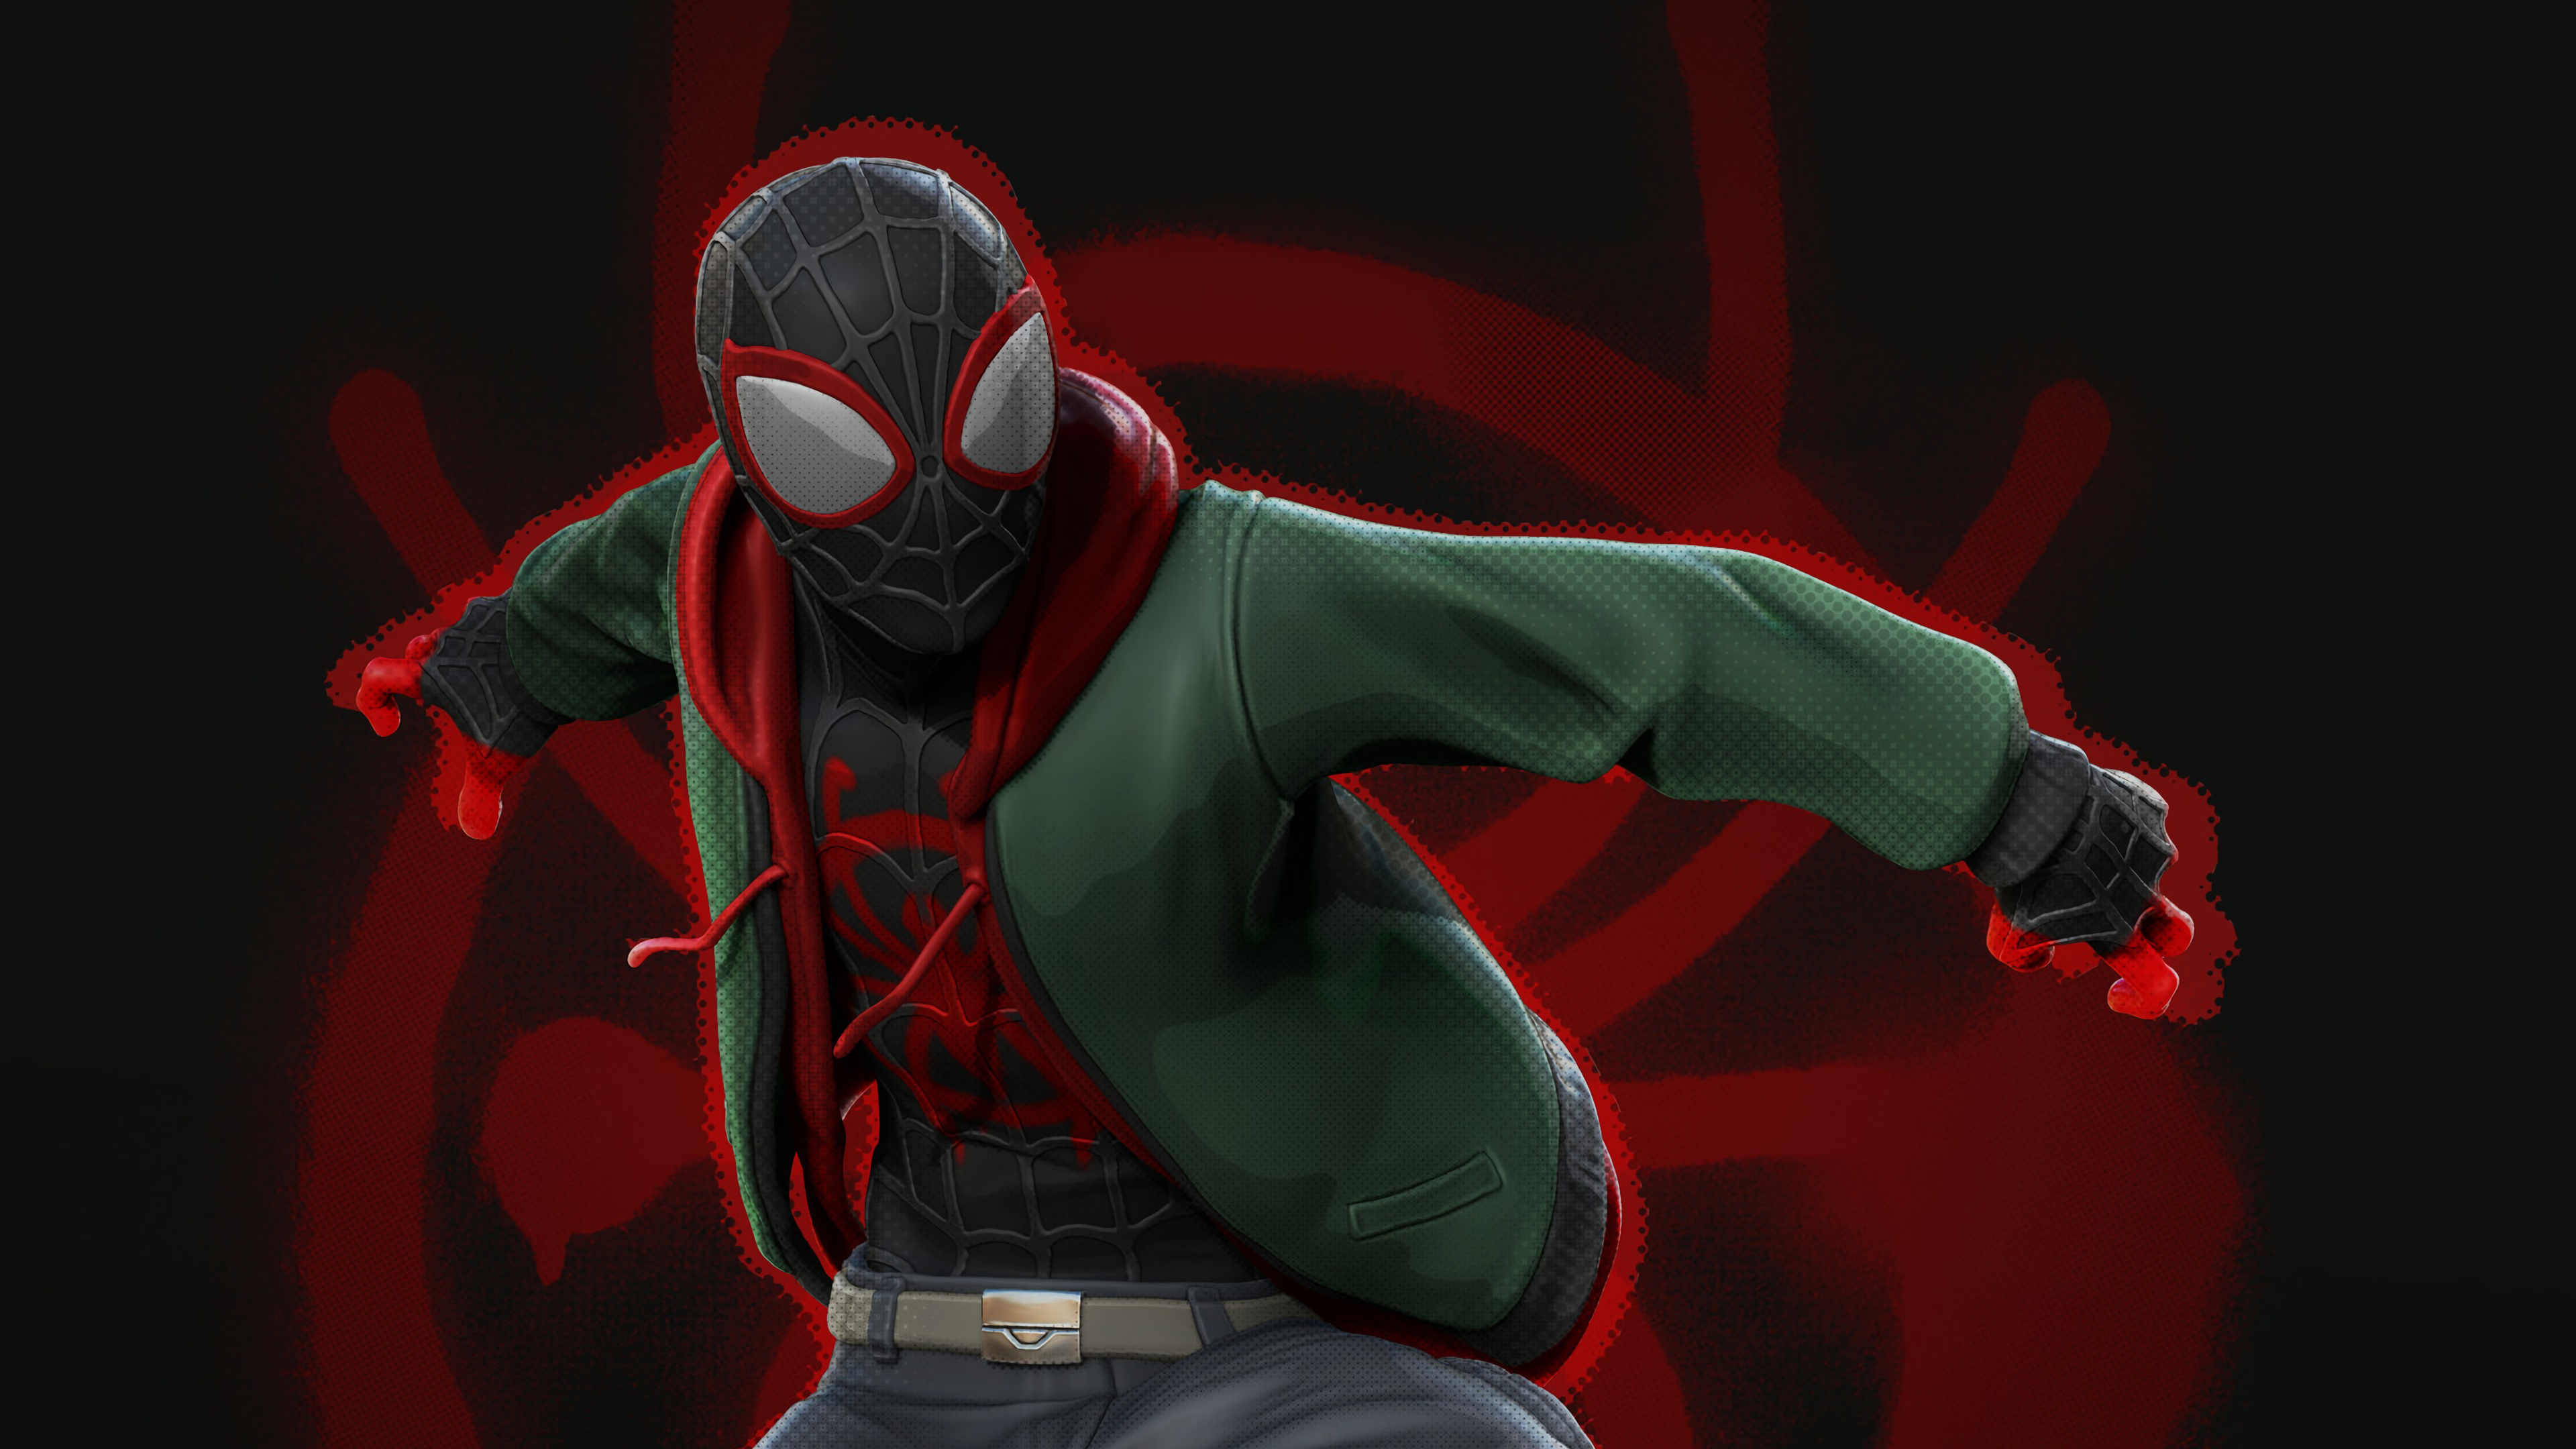 miles morales spiderman 1568054990 - Miles Morales Spiderman - superheroes wallpapers, spiderman wallpapers, hd-wallpapers, digital art wallpapers, deviantart wallpapers, artwork wallpapers, art wallpapers, 4k-wallpapers